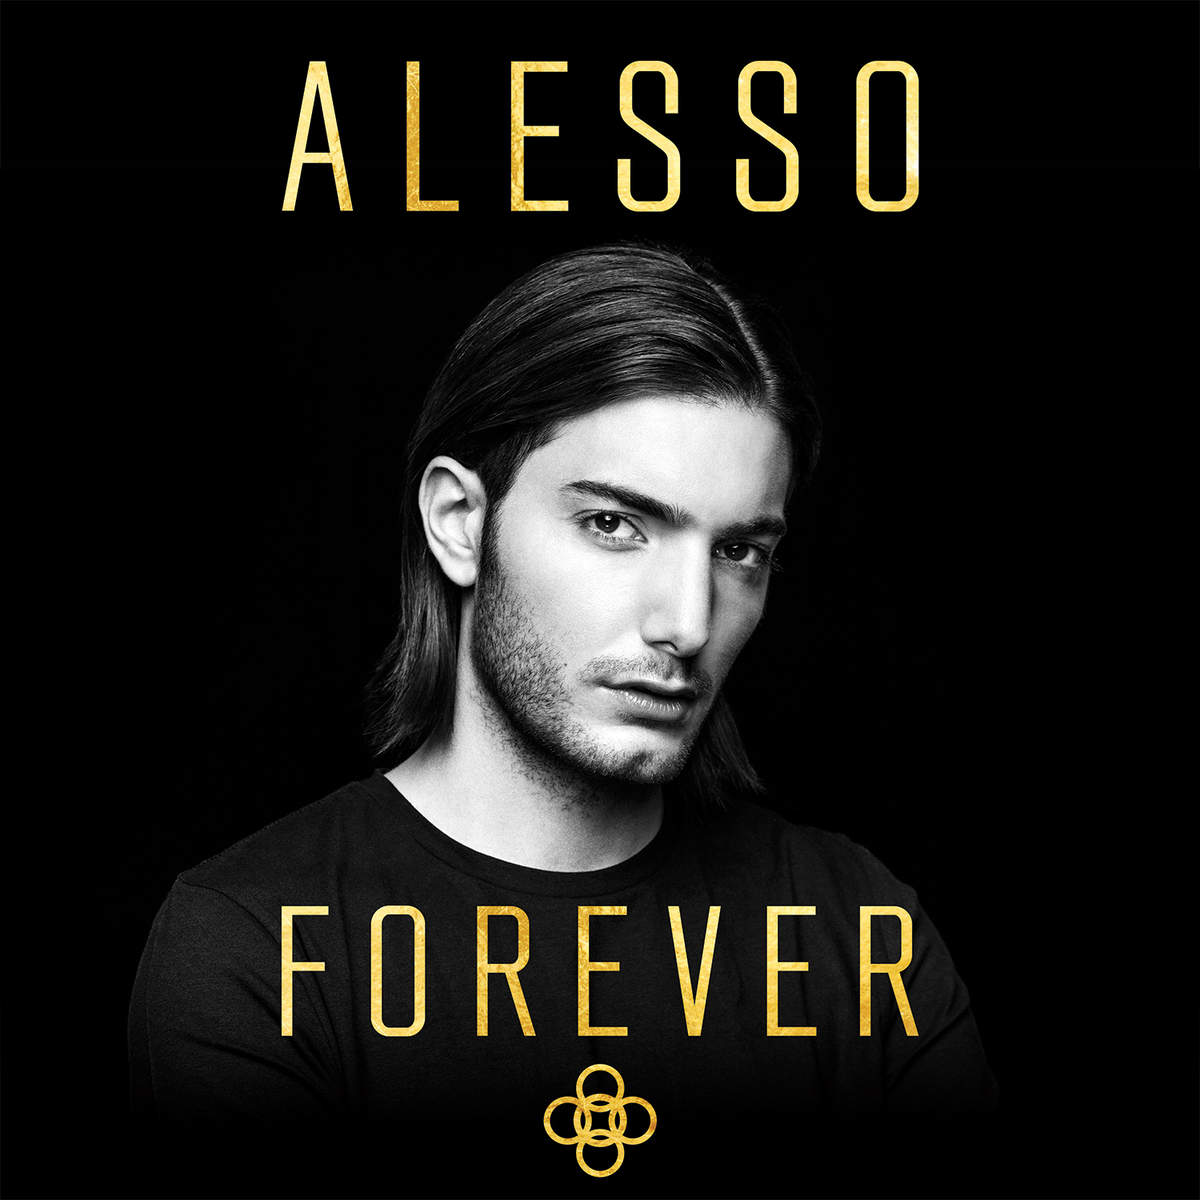 Alesso Forever Album Artwork